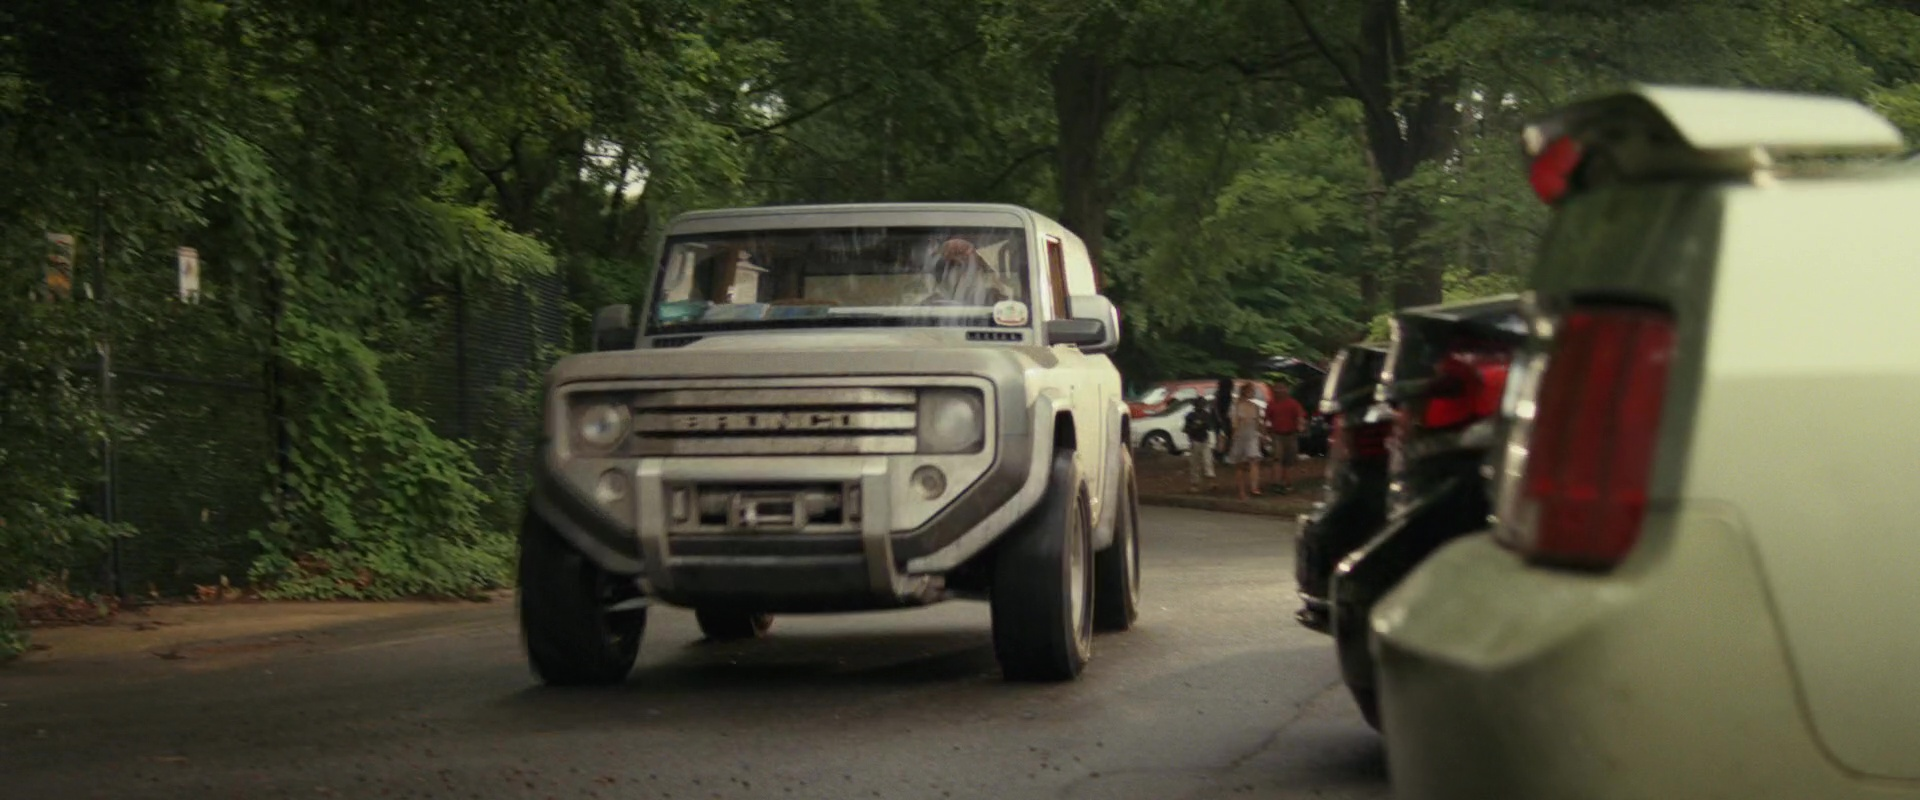 2017 Ford Bronco >> Ford Bronco Car Driven by Dwayne Johnson (The Rock) in ...